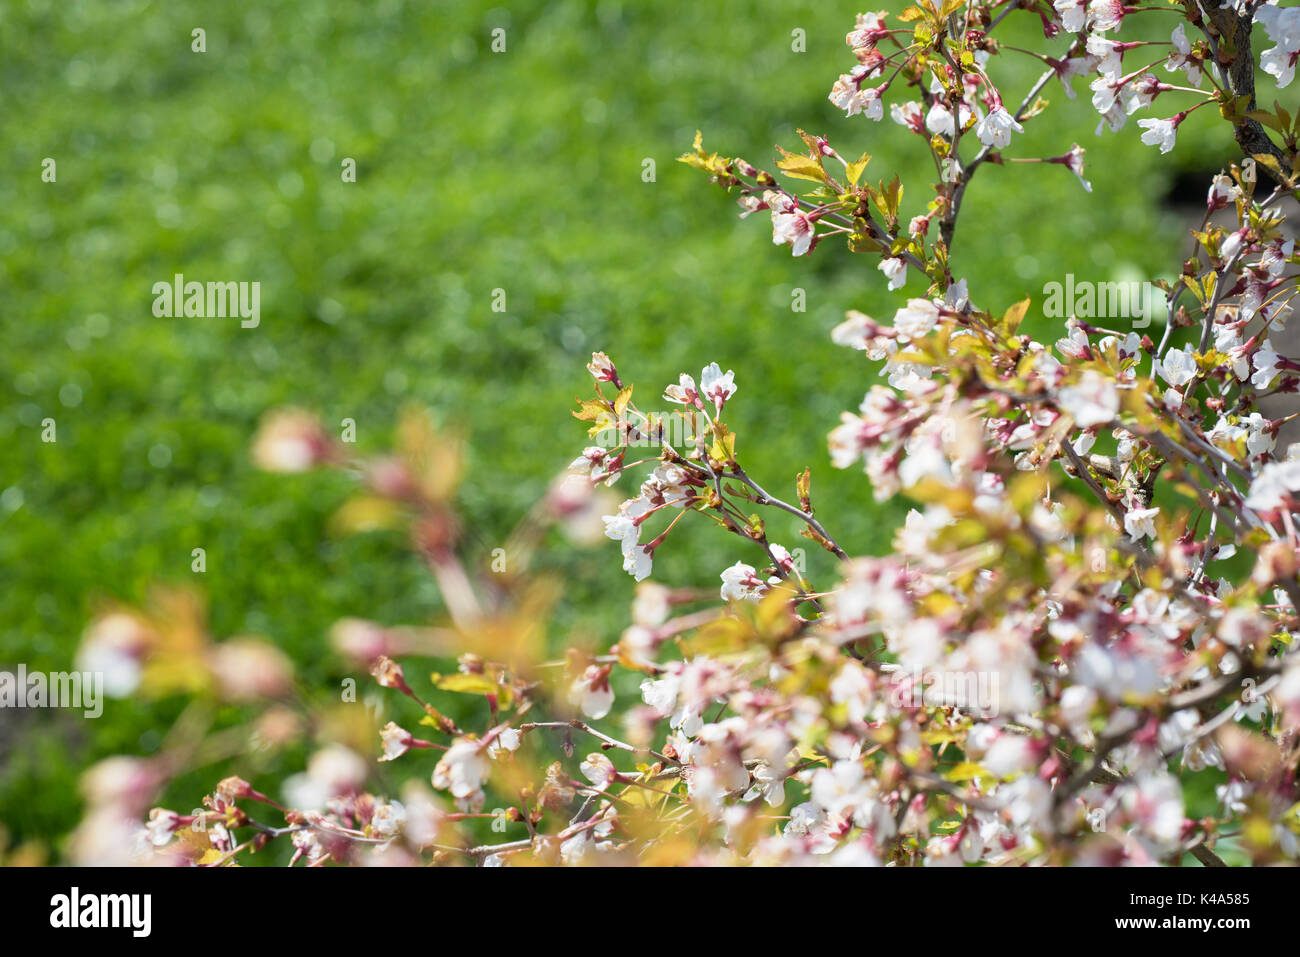 Blossoming Trees In Spring In The Garden Stock Photo 157575605 Alamy